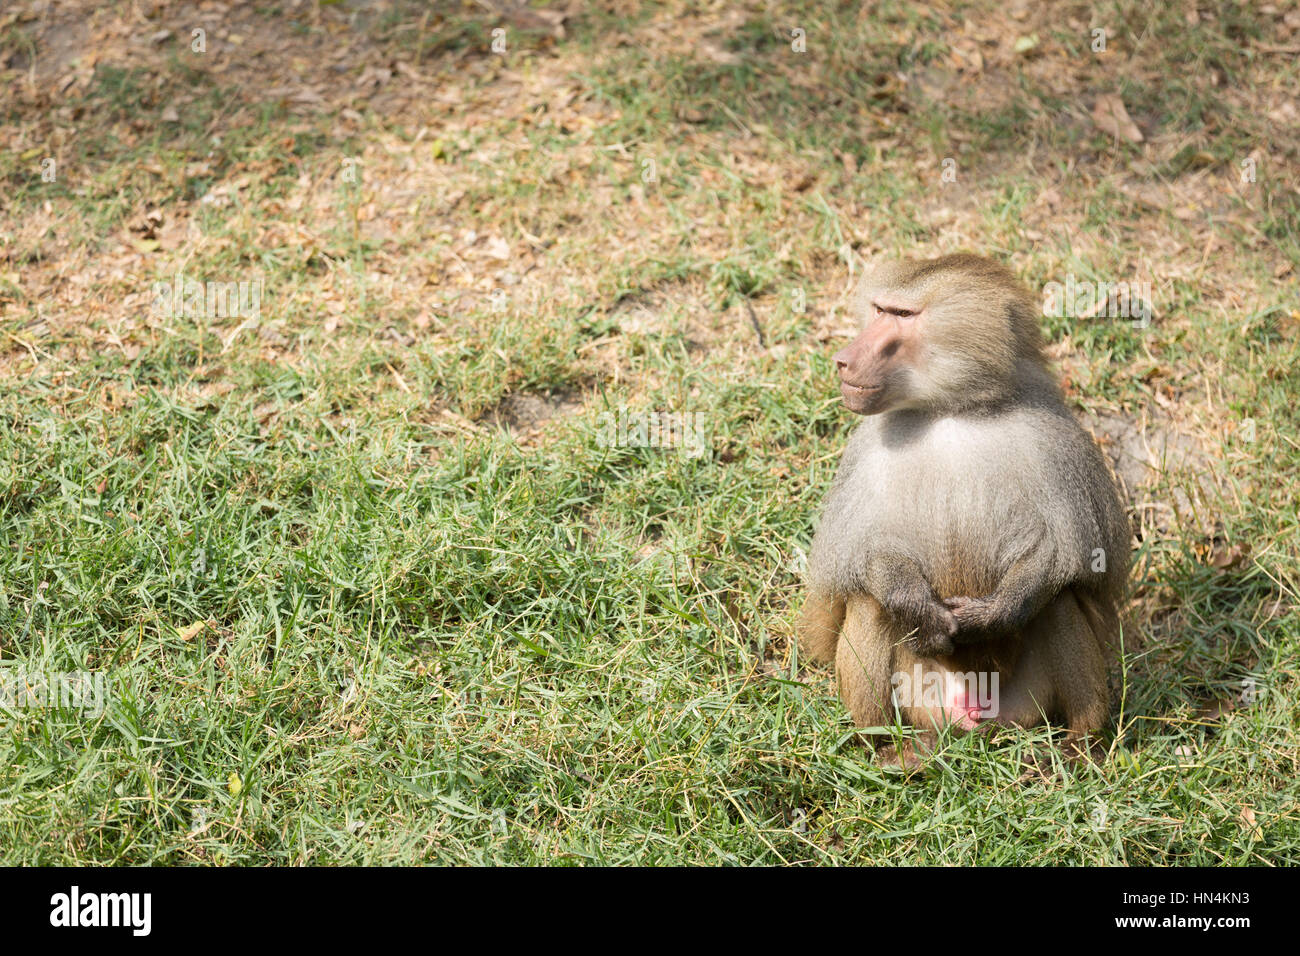 Baboons are African and Arabian Old World monkeys belonging to the genus Papio, part of the subfamily Cercopithecinae. - Stock Image